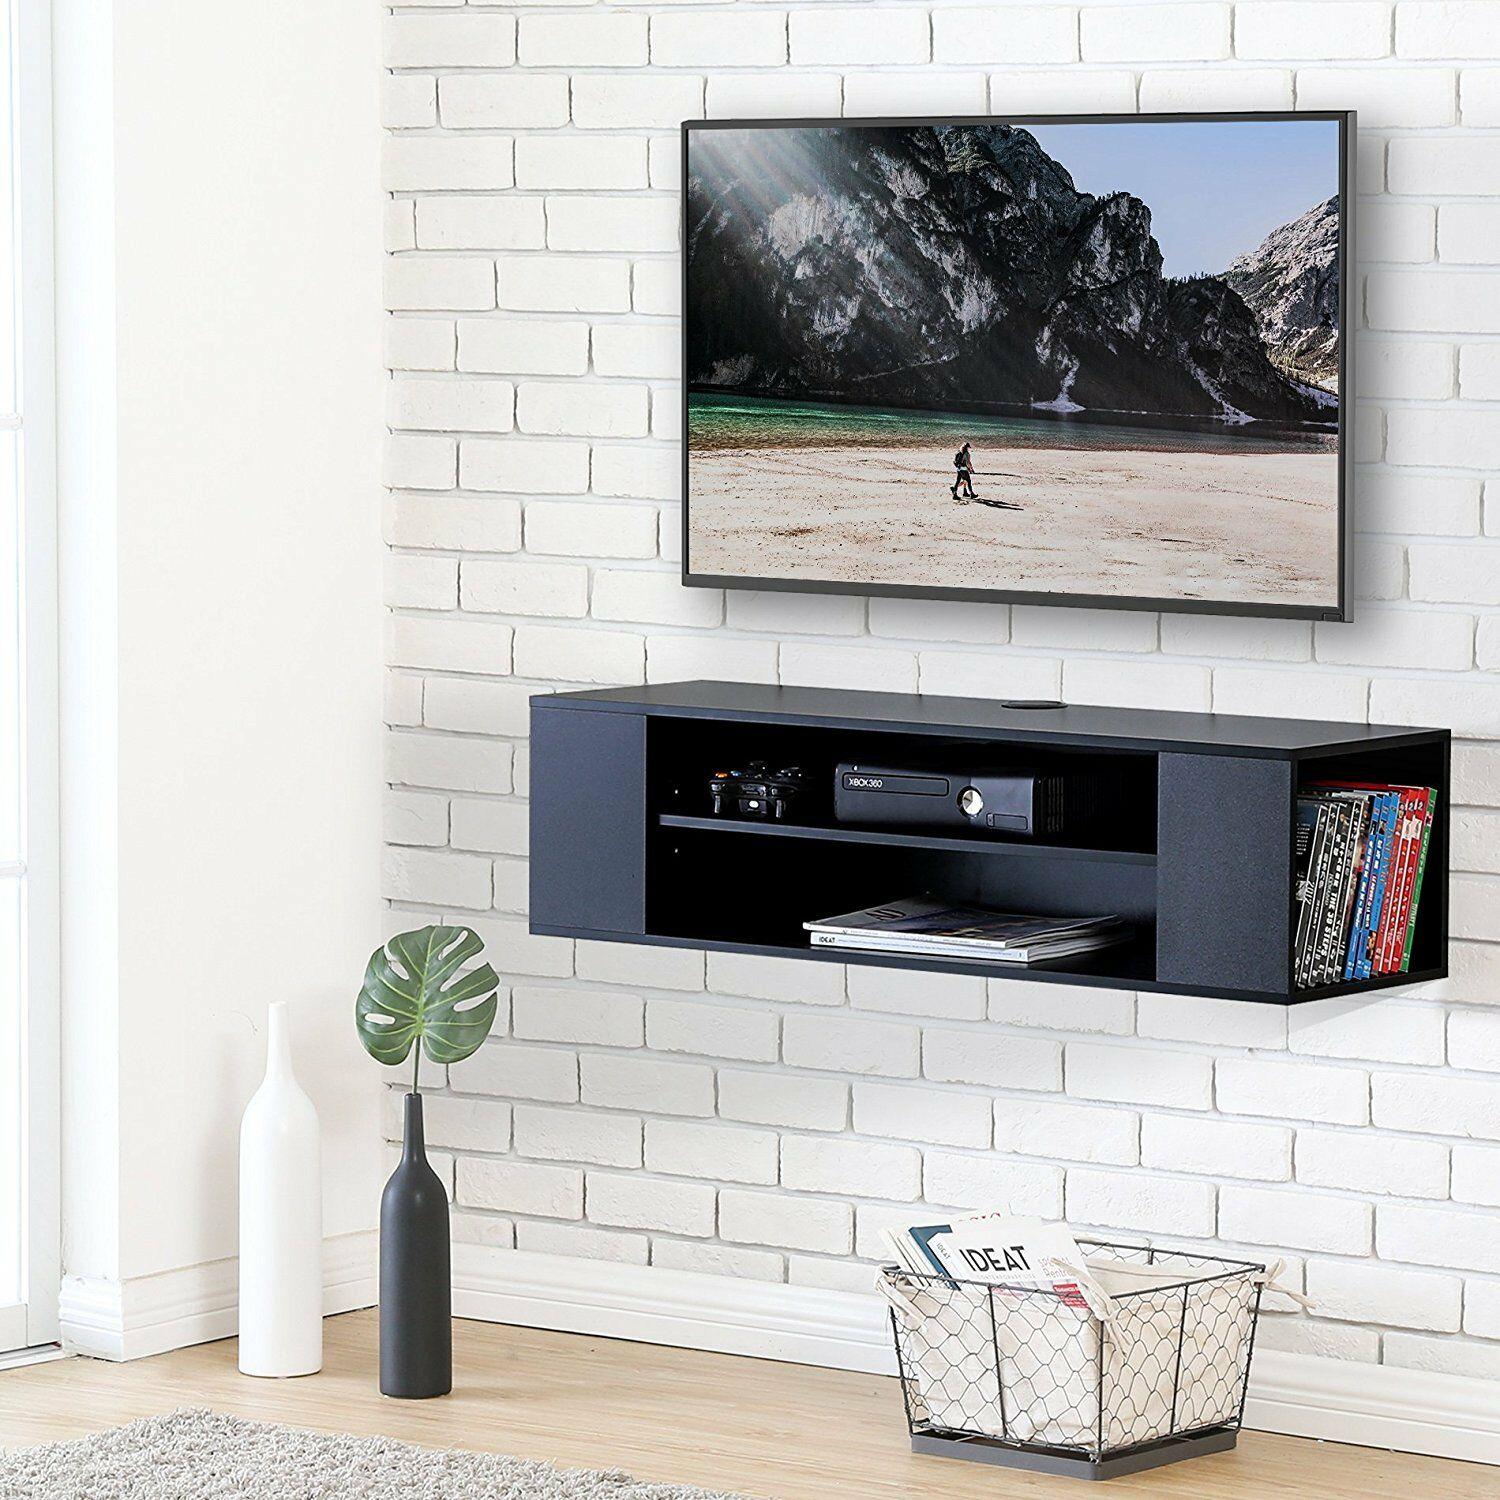 Black Media Console Floating Wall Mount Tv Stand Entertainment Unit Living Room 1 Of 5free Shipping